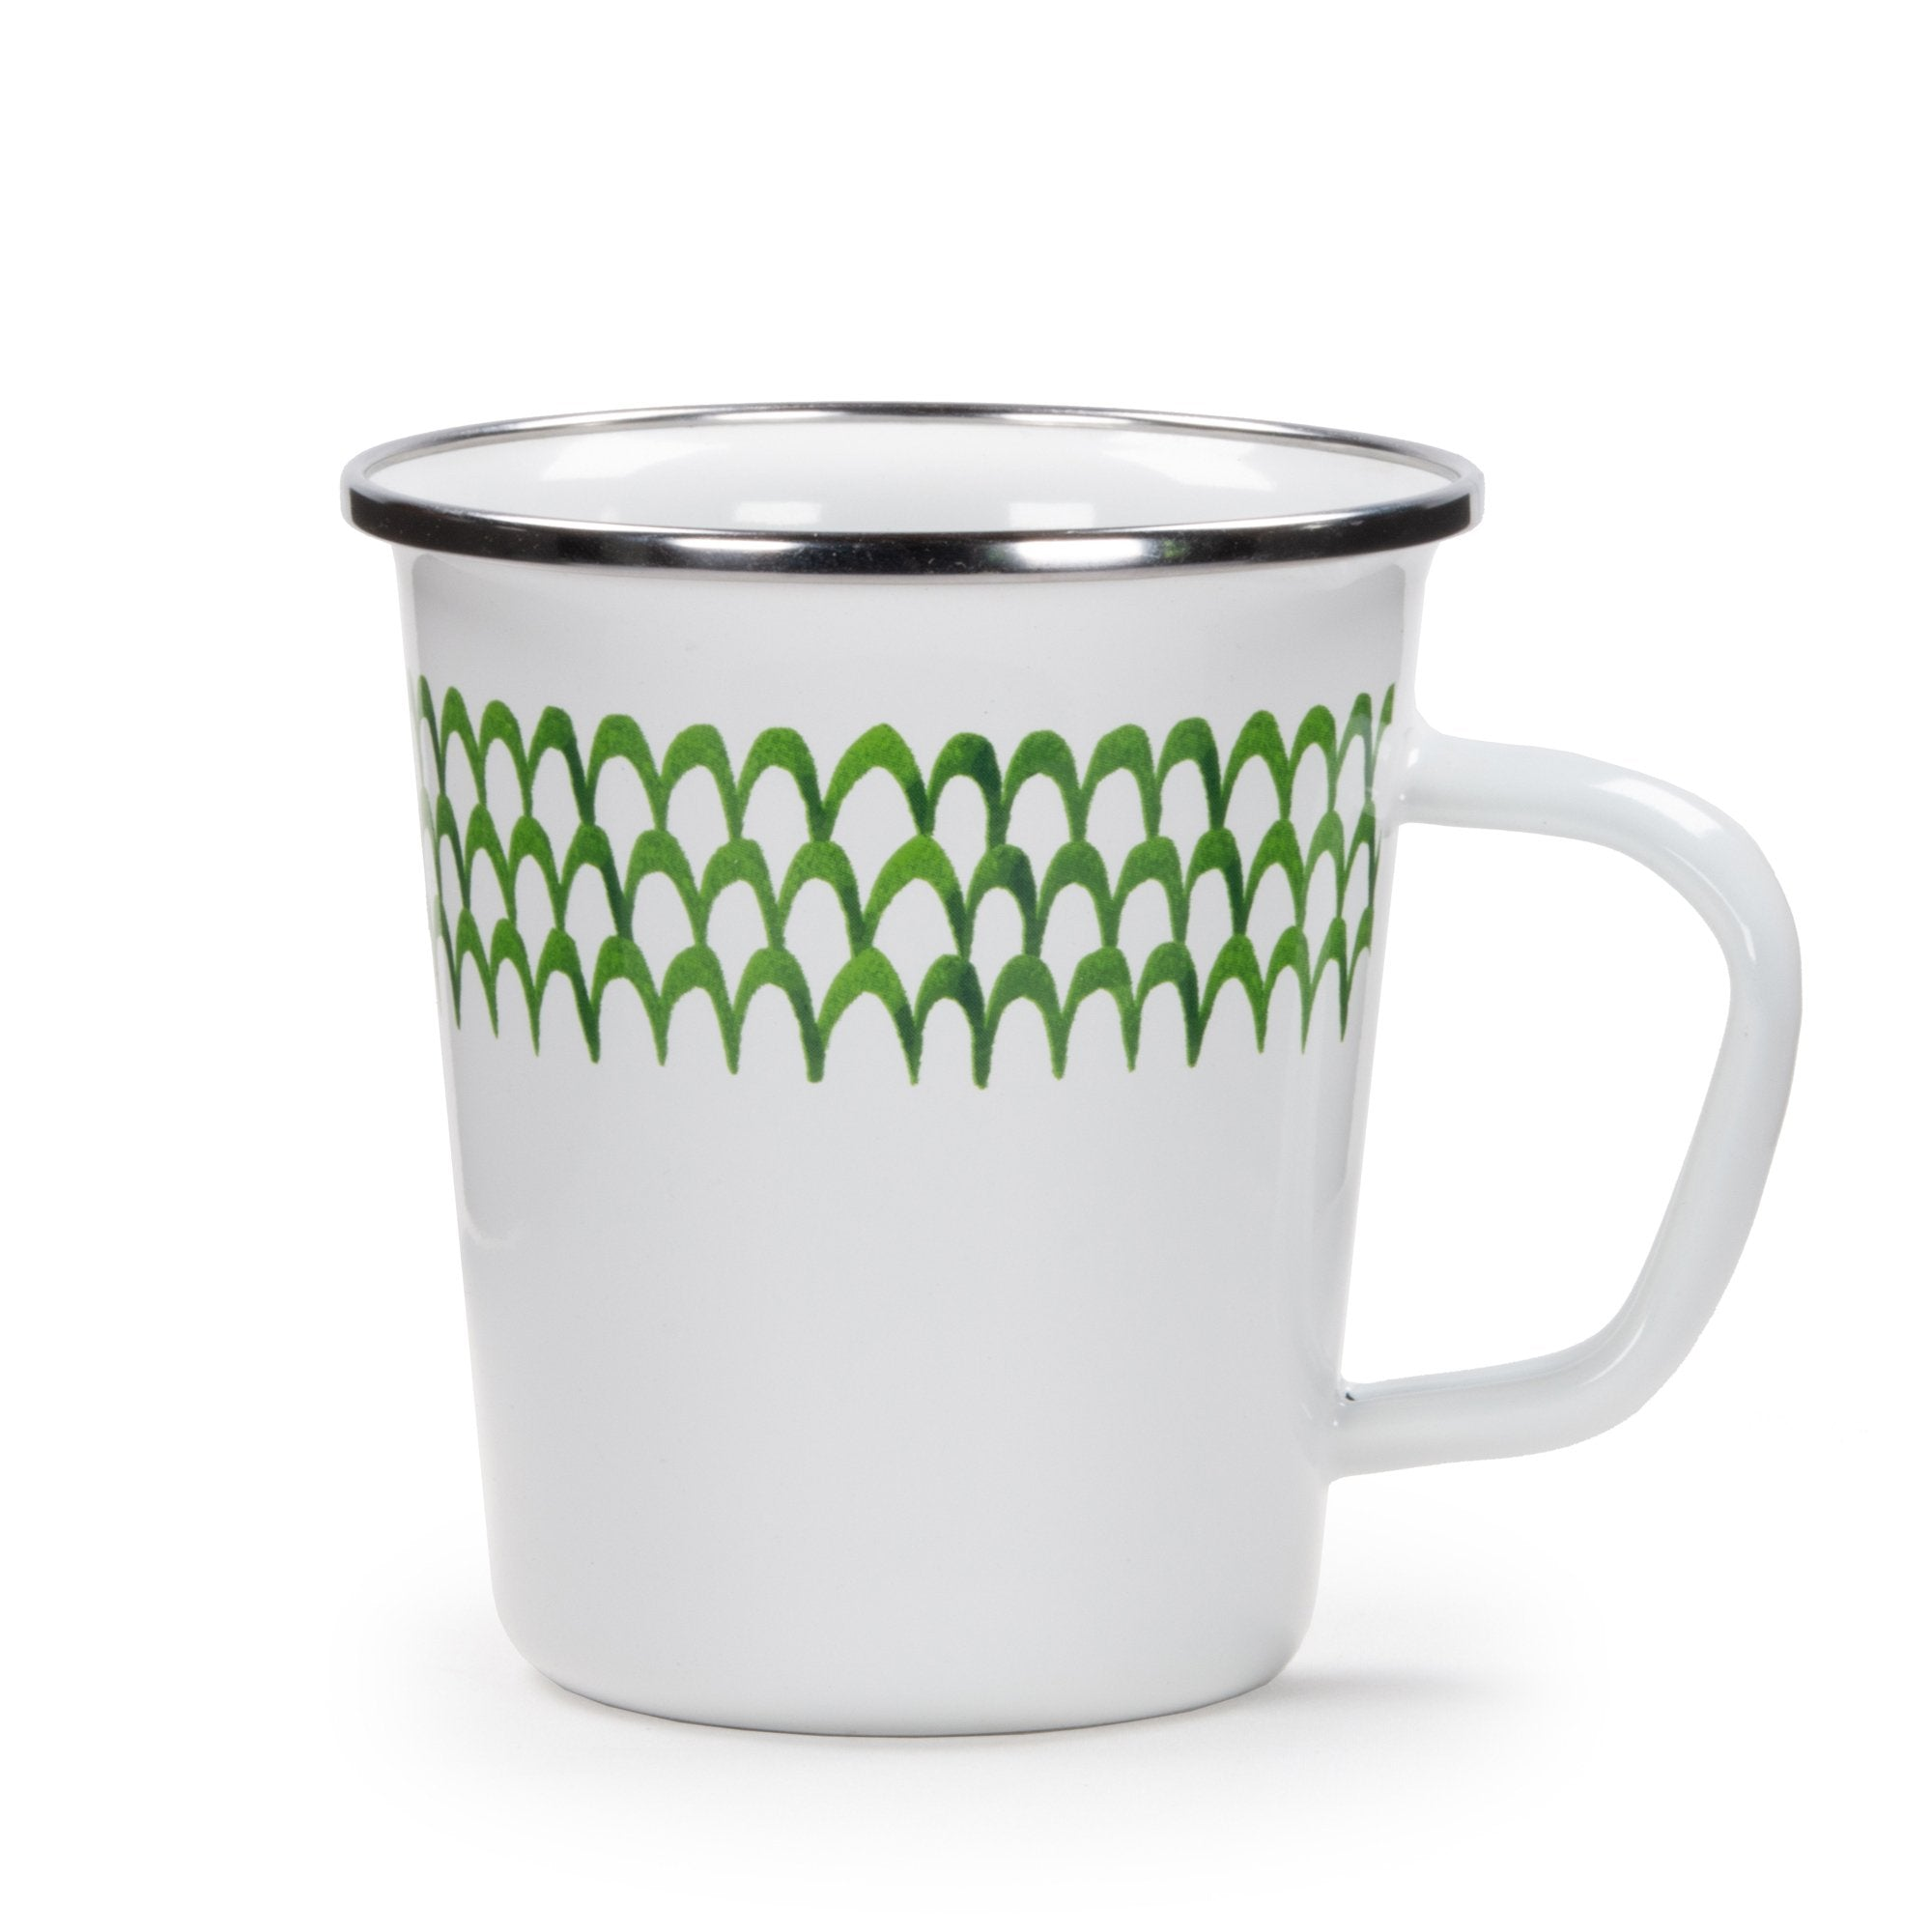 GS66 - Green Scallop Pattern - Latte Mug